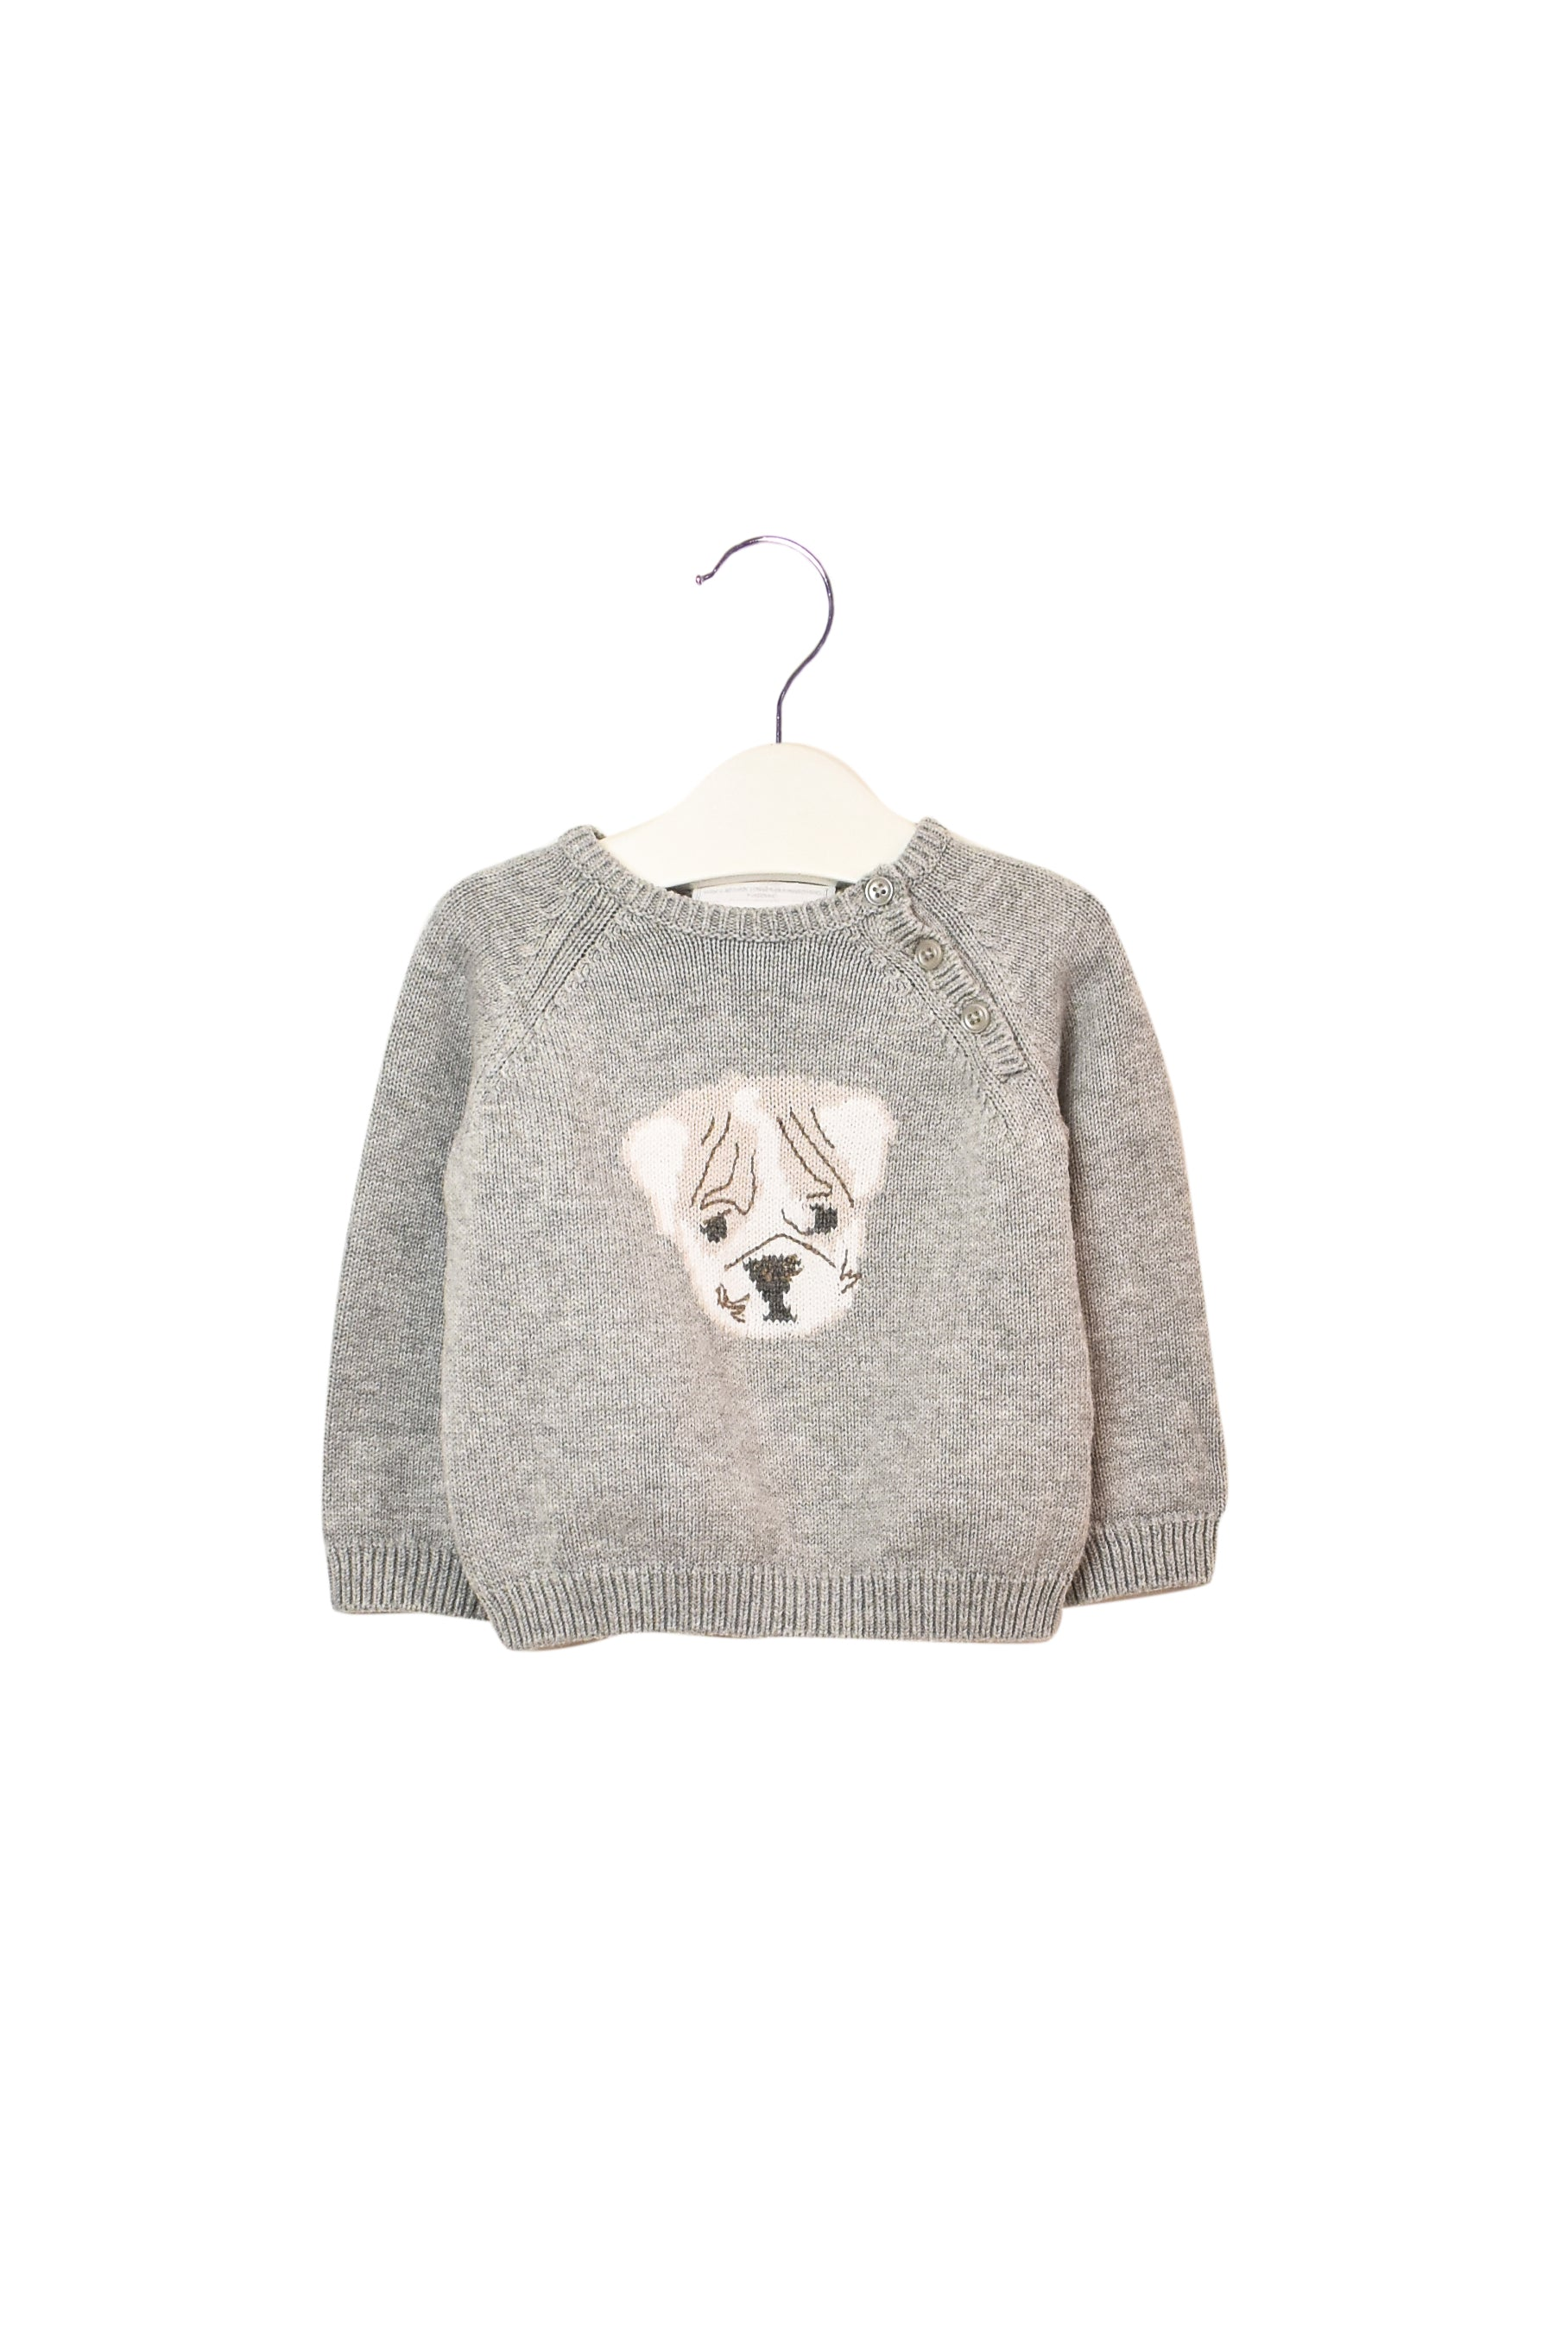 10008280 The Little White Company Baby ~ Sweater 3-6M at Retykle